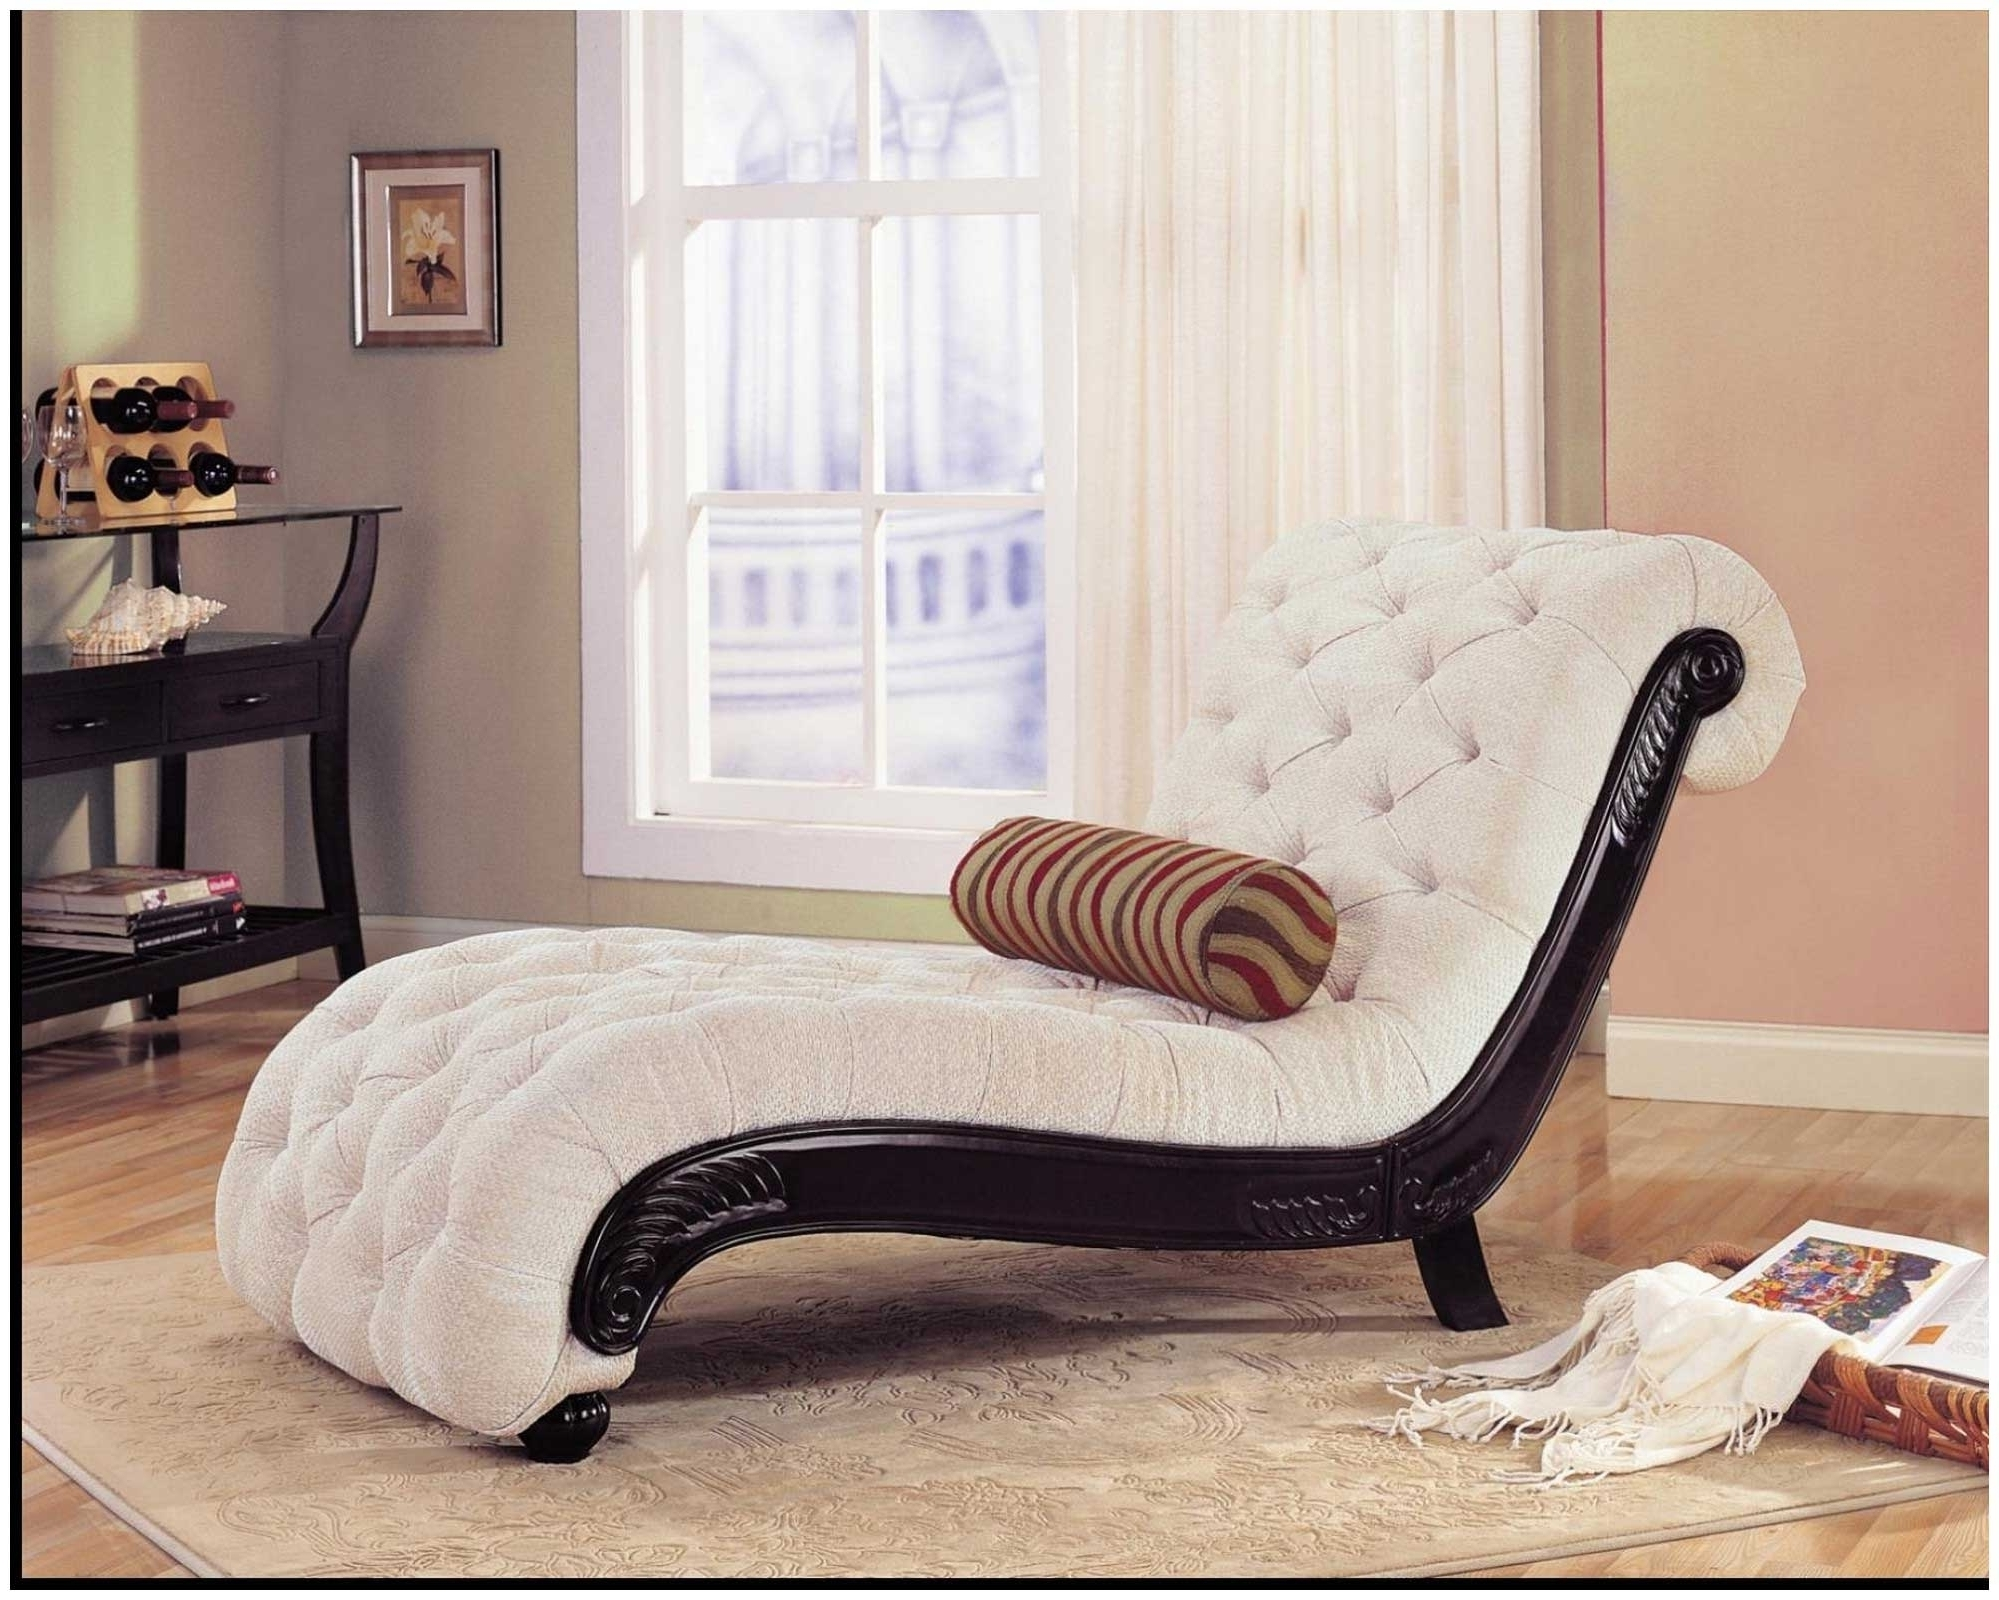 Small Chaise Lounge Chairs For Bedroom Regarding Current Bedroom Loungers Small Chaise Lounge Chair Leather Inspirations (View 12 of 15)